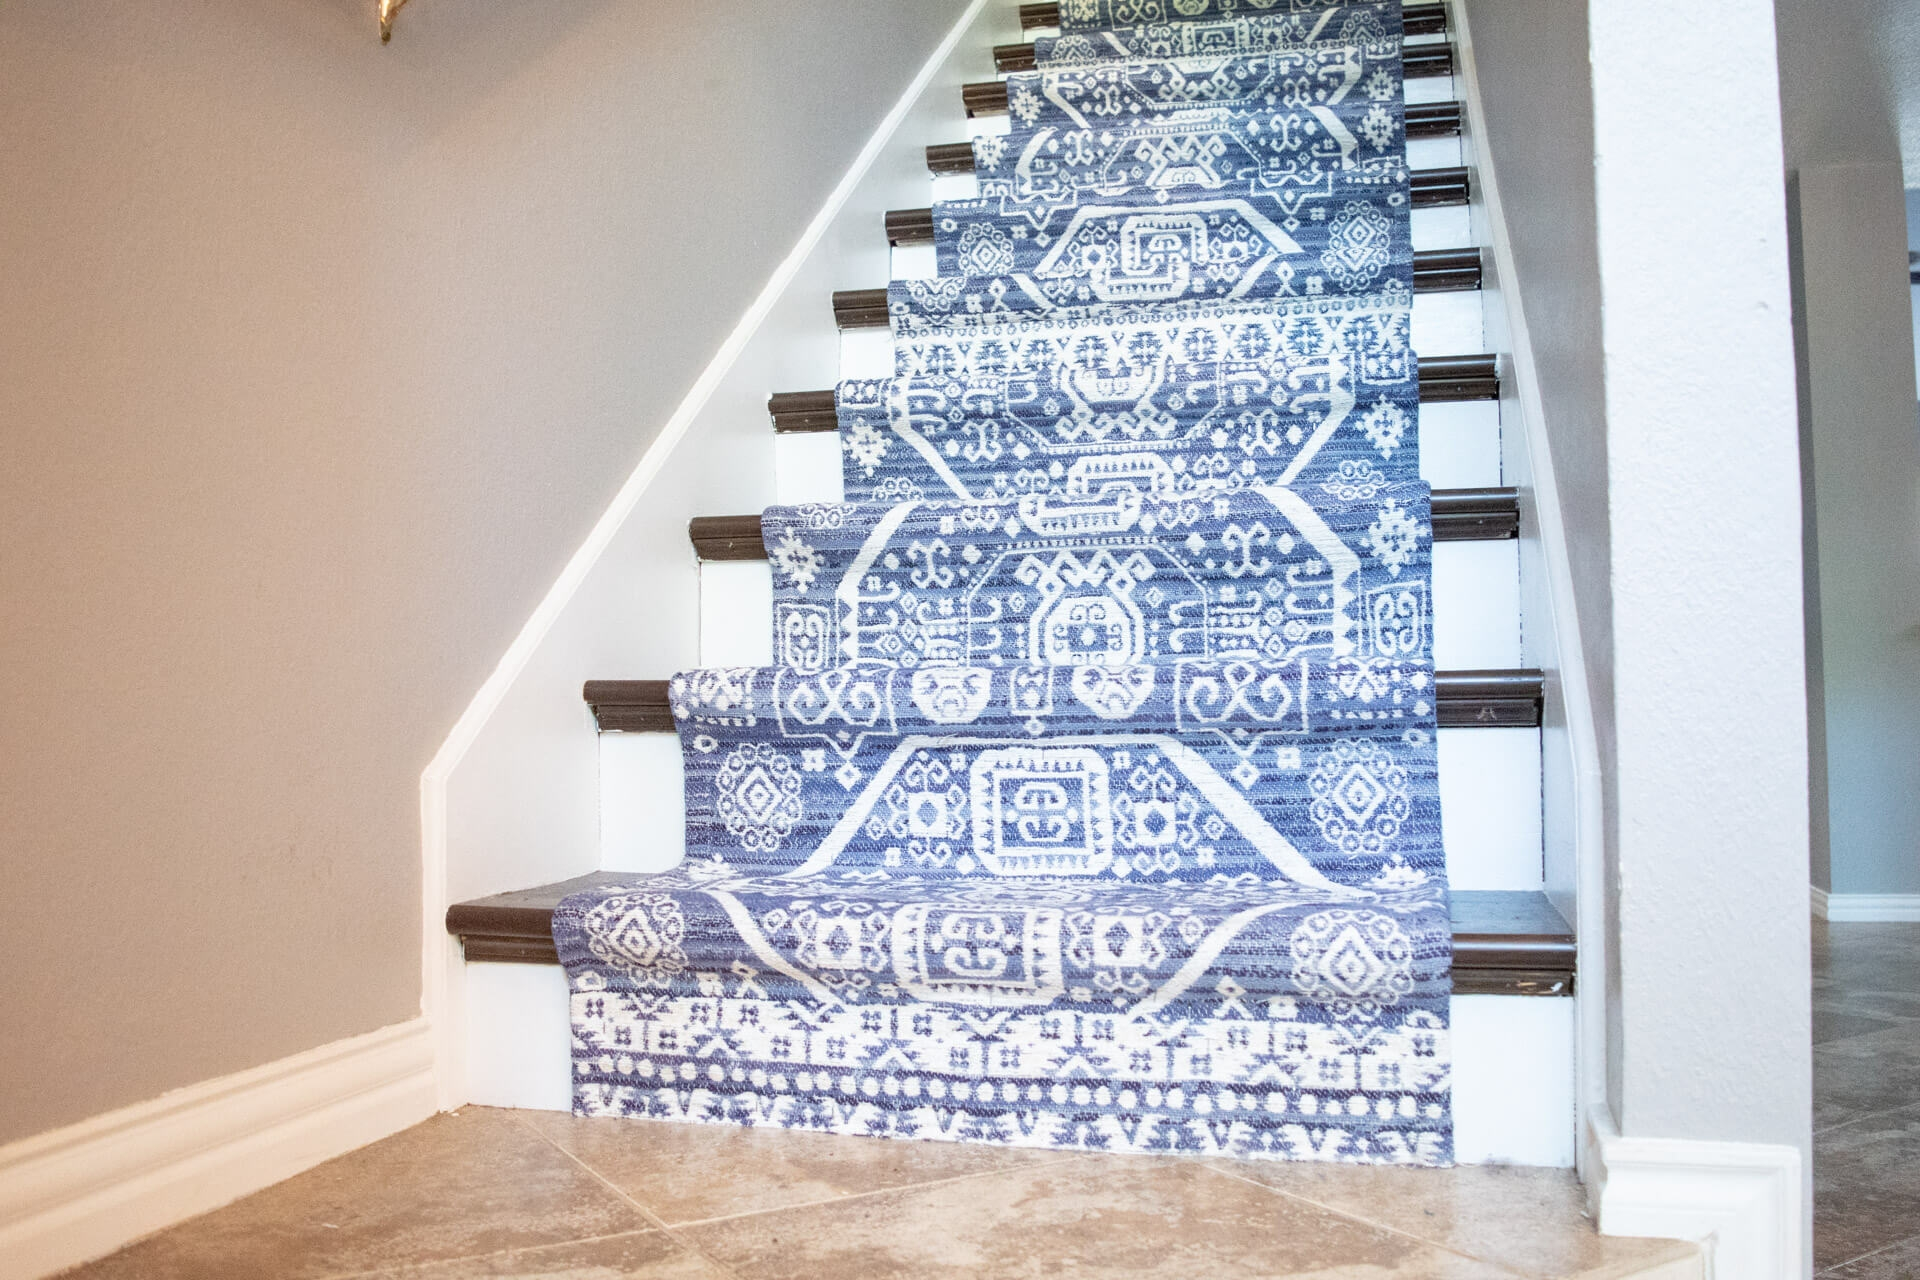 How To Install Hardwood Flooring On Stairs With Nosing » Diy | Installing Hardwood Stairs Over Existing Stairs | Prefinished Stair | Stair Tread Caps | Carpeted Stairs | Wood Flooring | Treads